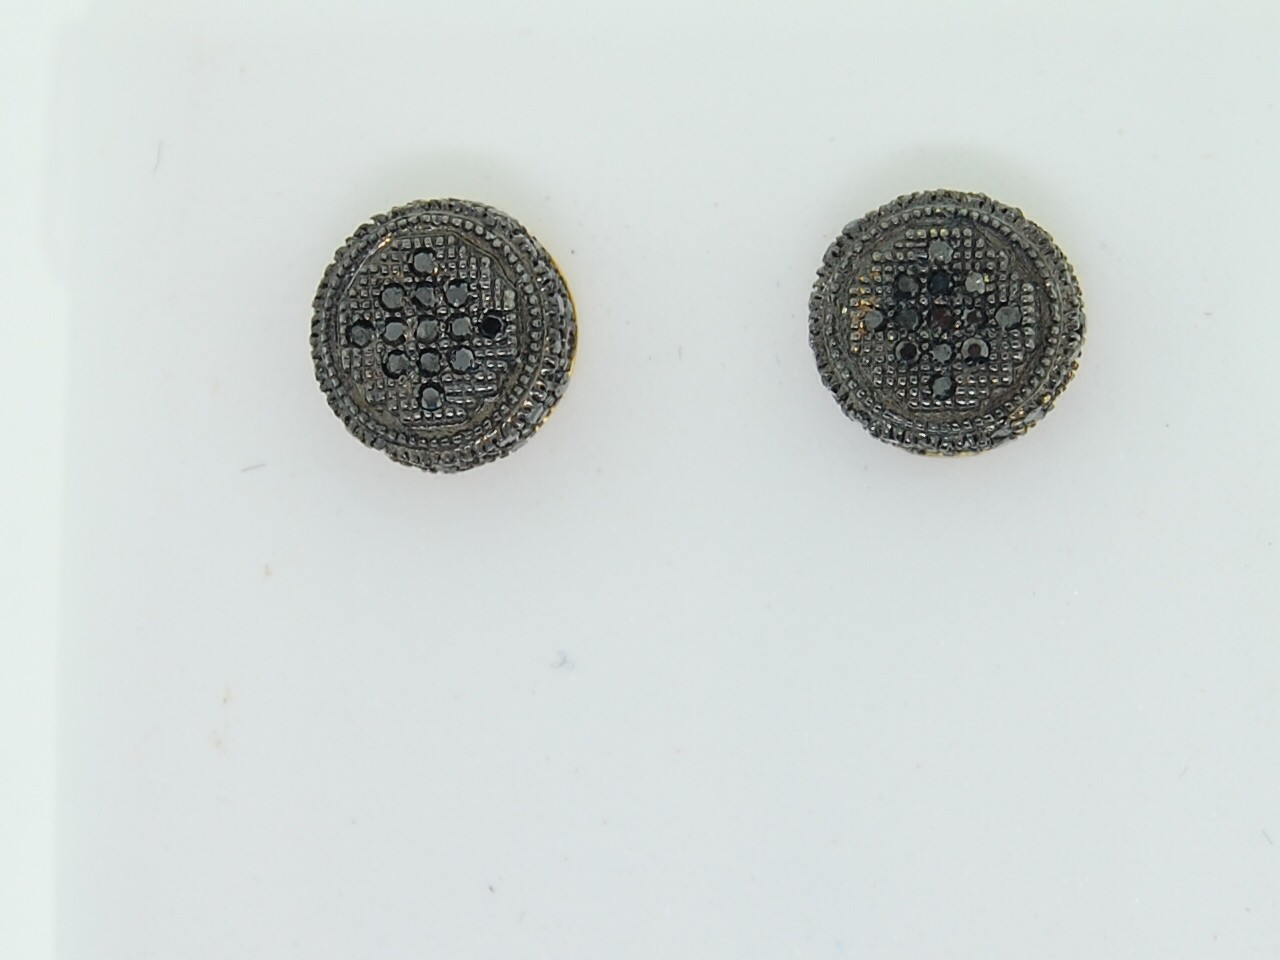 MENS 10K YELLOW GOLD 0 35CT BLACK DIAMOND EARRINGS STUD